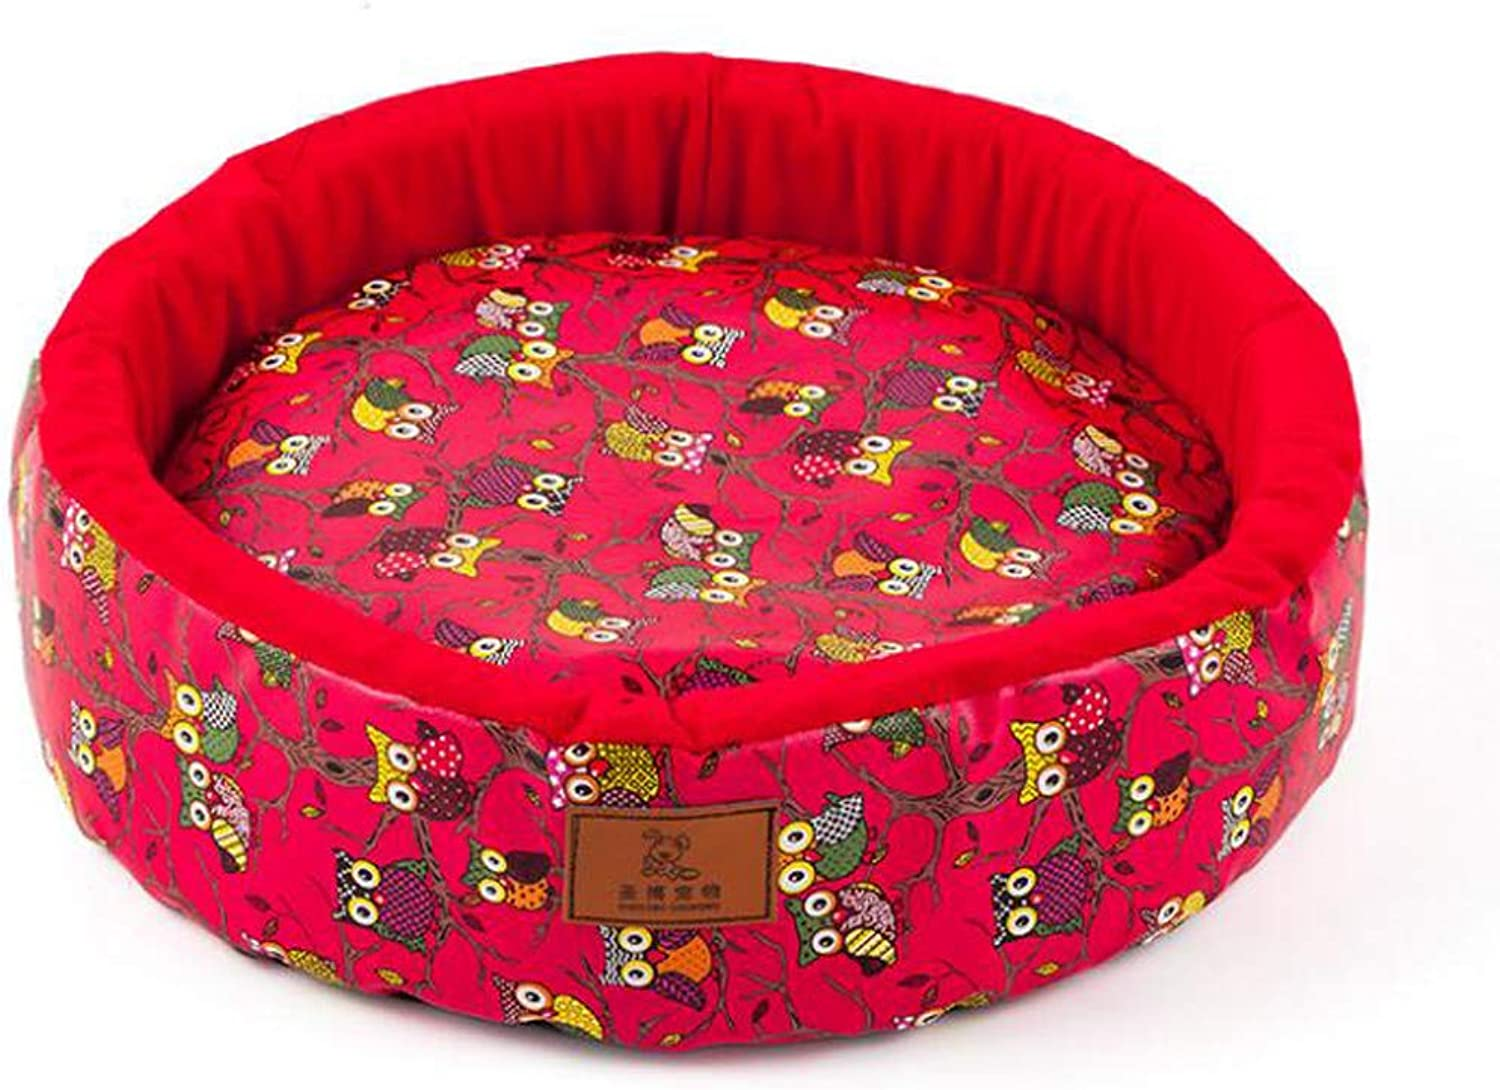 Hhrong Pet Nest Dog Cat Bed Red Printed Owl Kennel, Warm And Comfortable Pet Dog Bed Easy To Clean (color   Red, Size   L)